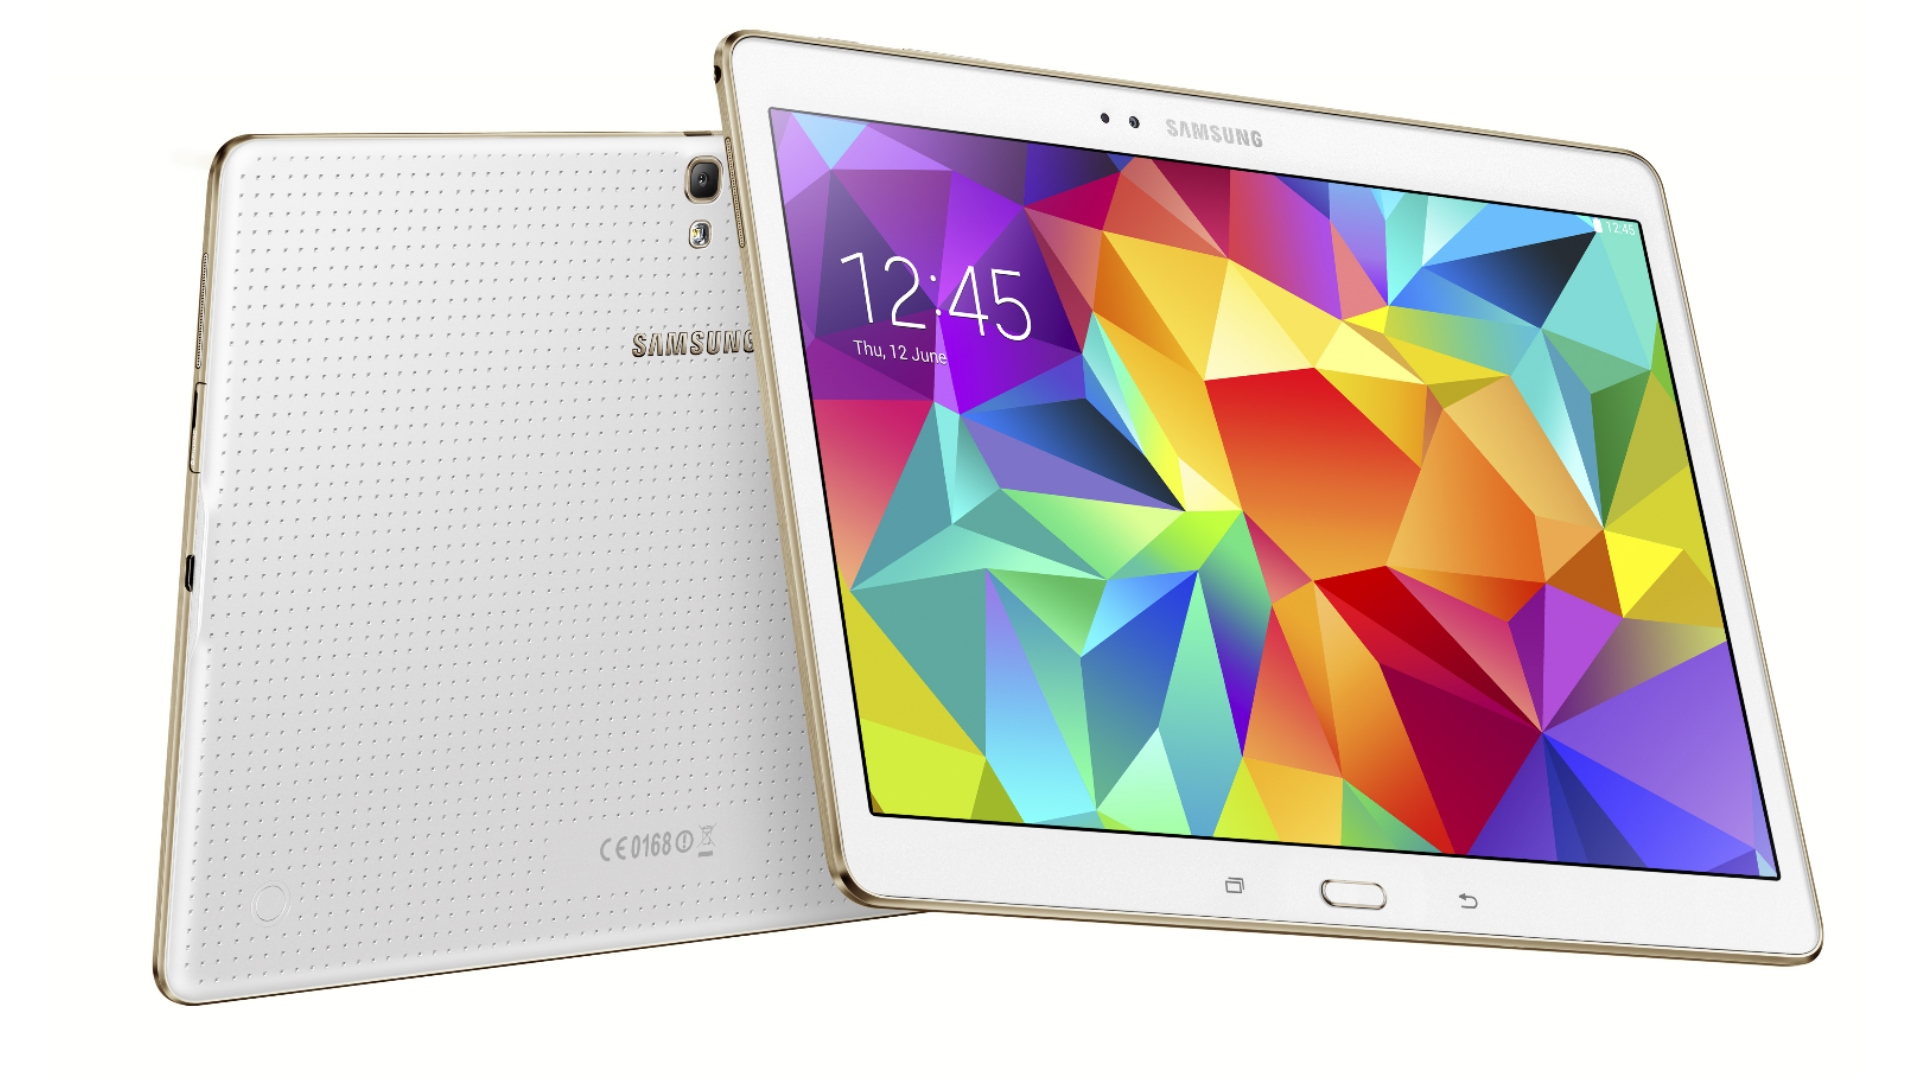 samsung galaxy tab s 10.5 deals